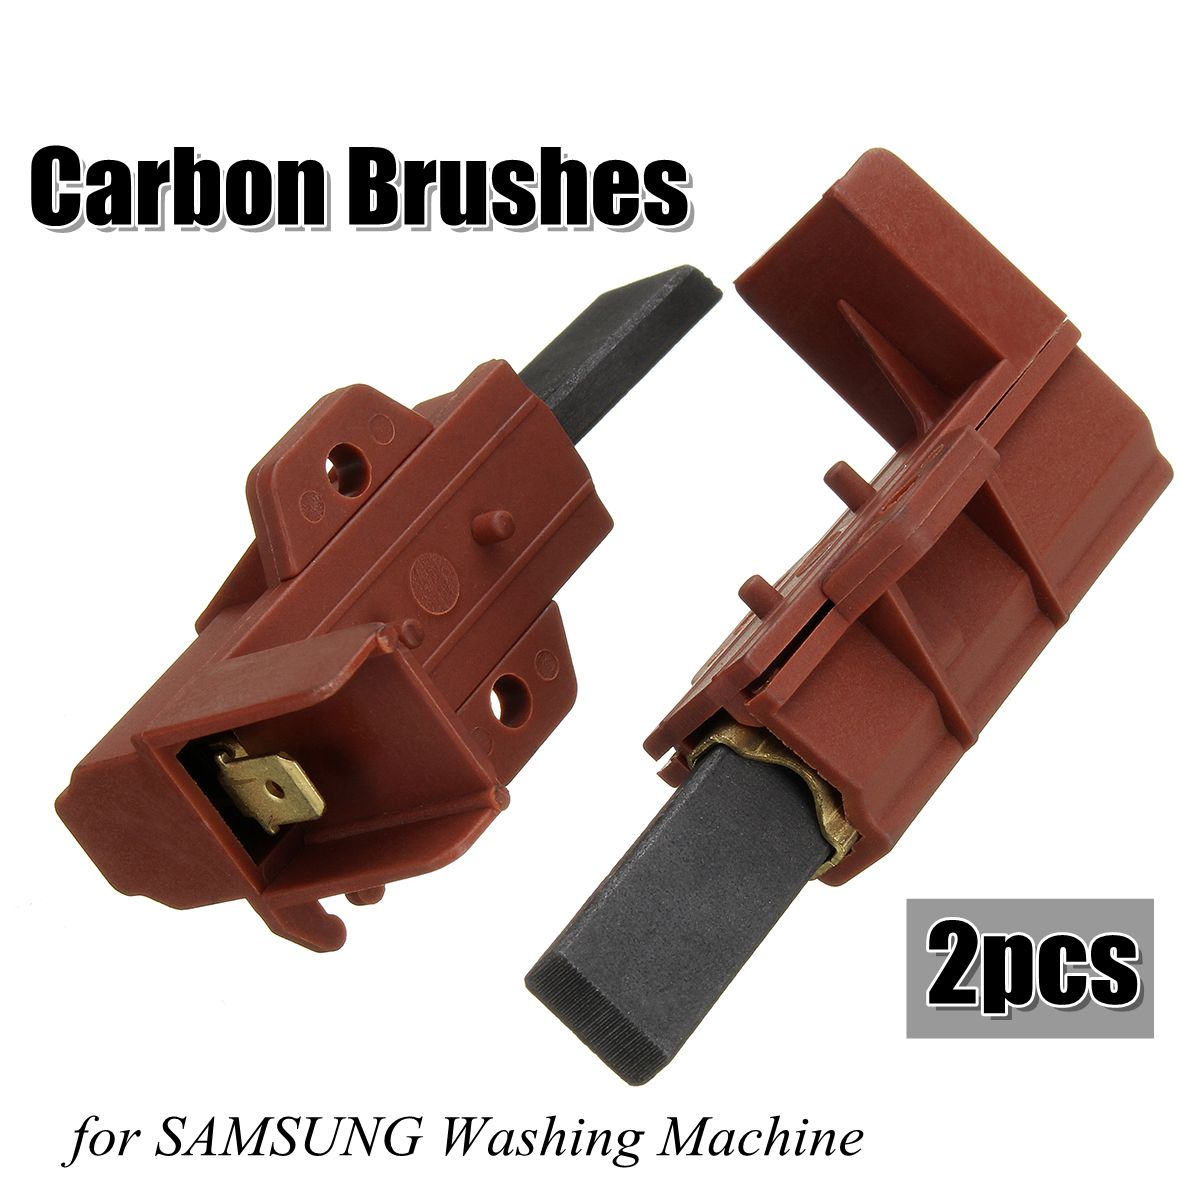 2pcs Washing Machine Motor Carbon Brush And Holder For SAMSUNG Ariston Indesit Welling2pcs Washing Machine Motor Carbon Brush And Holder For SAMSUNG Ariston Indesit Welling